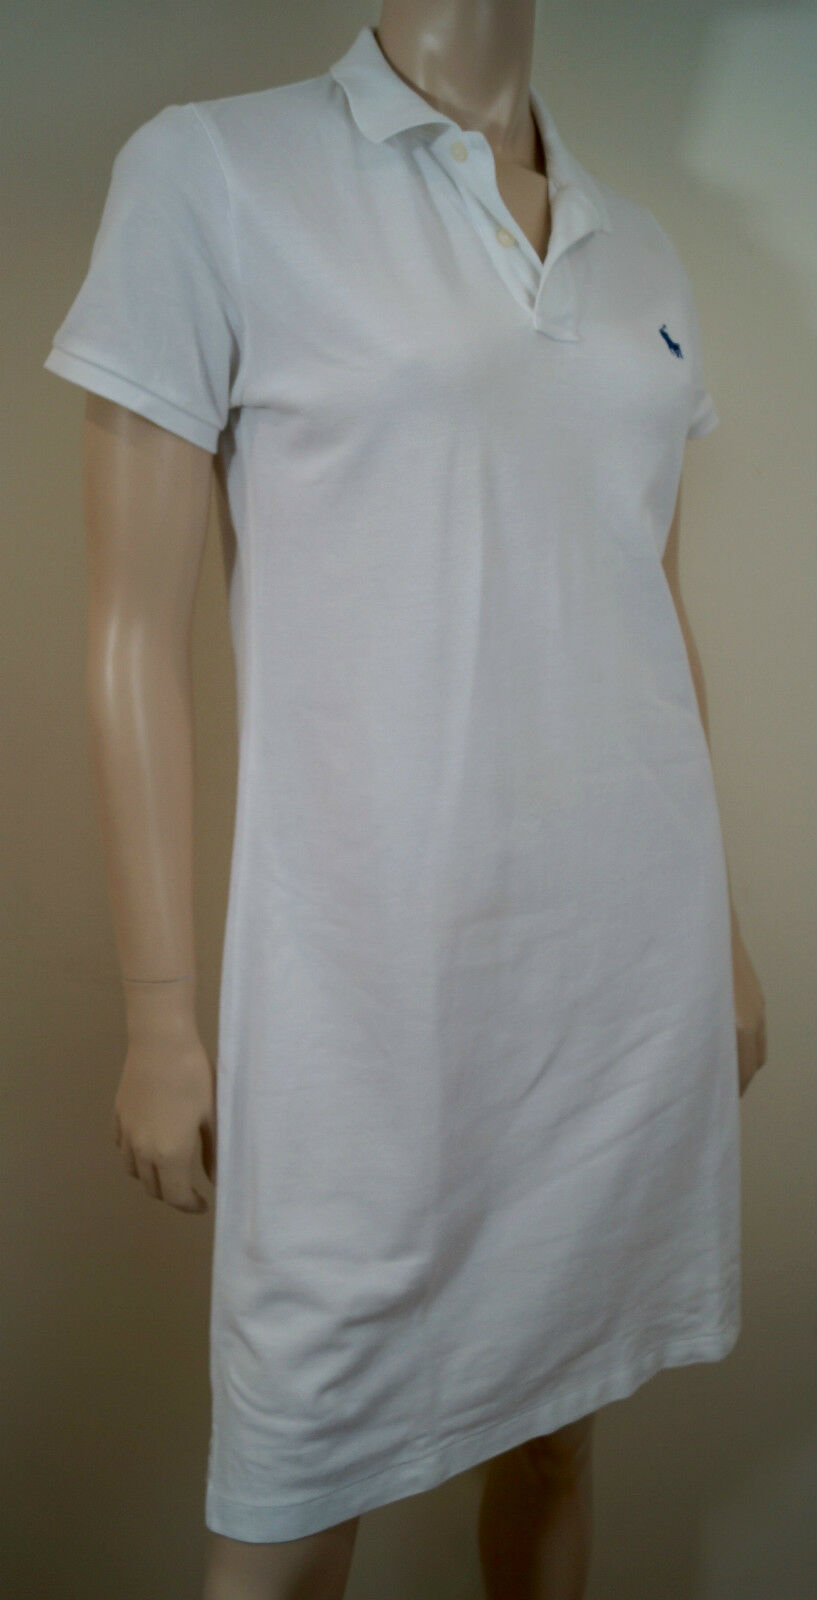 RALPH LAUREN bluee Label White 100% Cotton Mesh Branded Collared Polo Dress Sz M